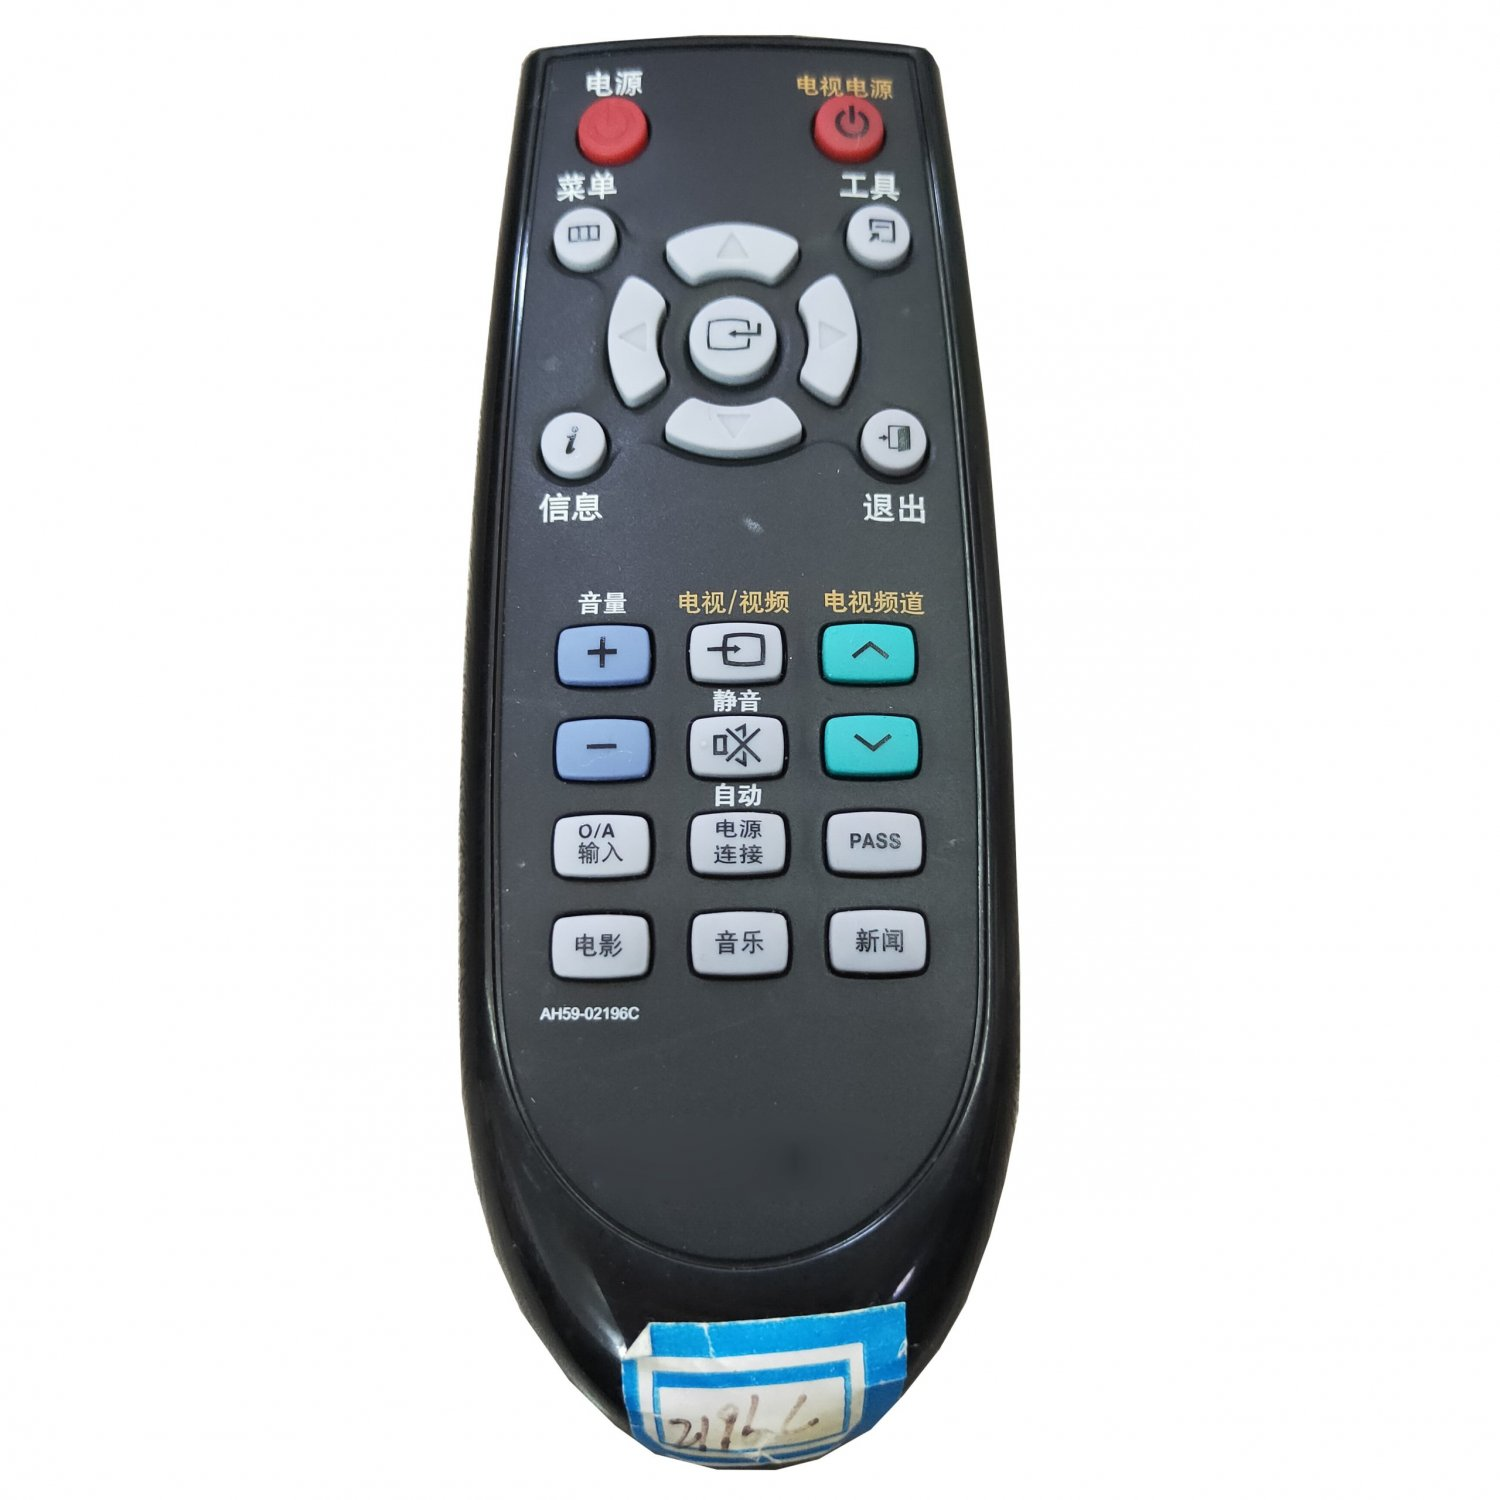 Used Original AH59-02196C Remote Control For Samsung TV Home theater HWC450 HWC451 Chinese